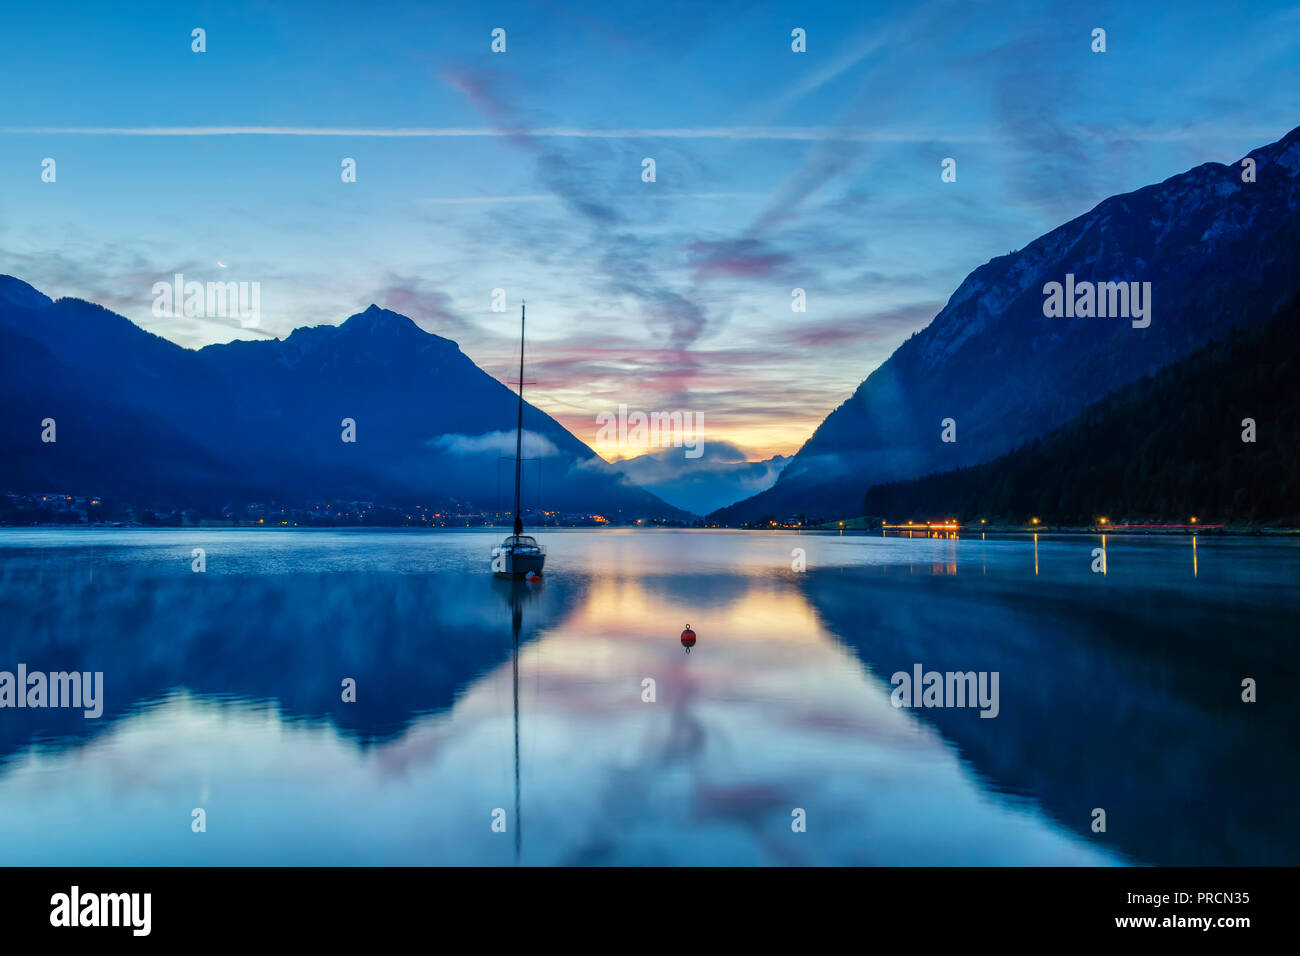 A sailboat in front of a colorful sunrise at the Lake Achensee in Austria. - Stock Image